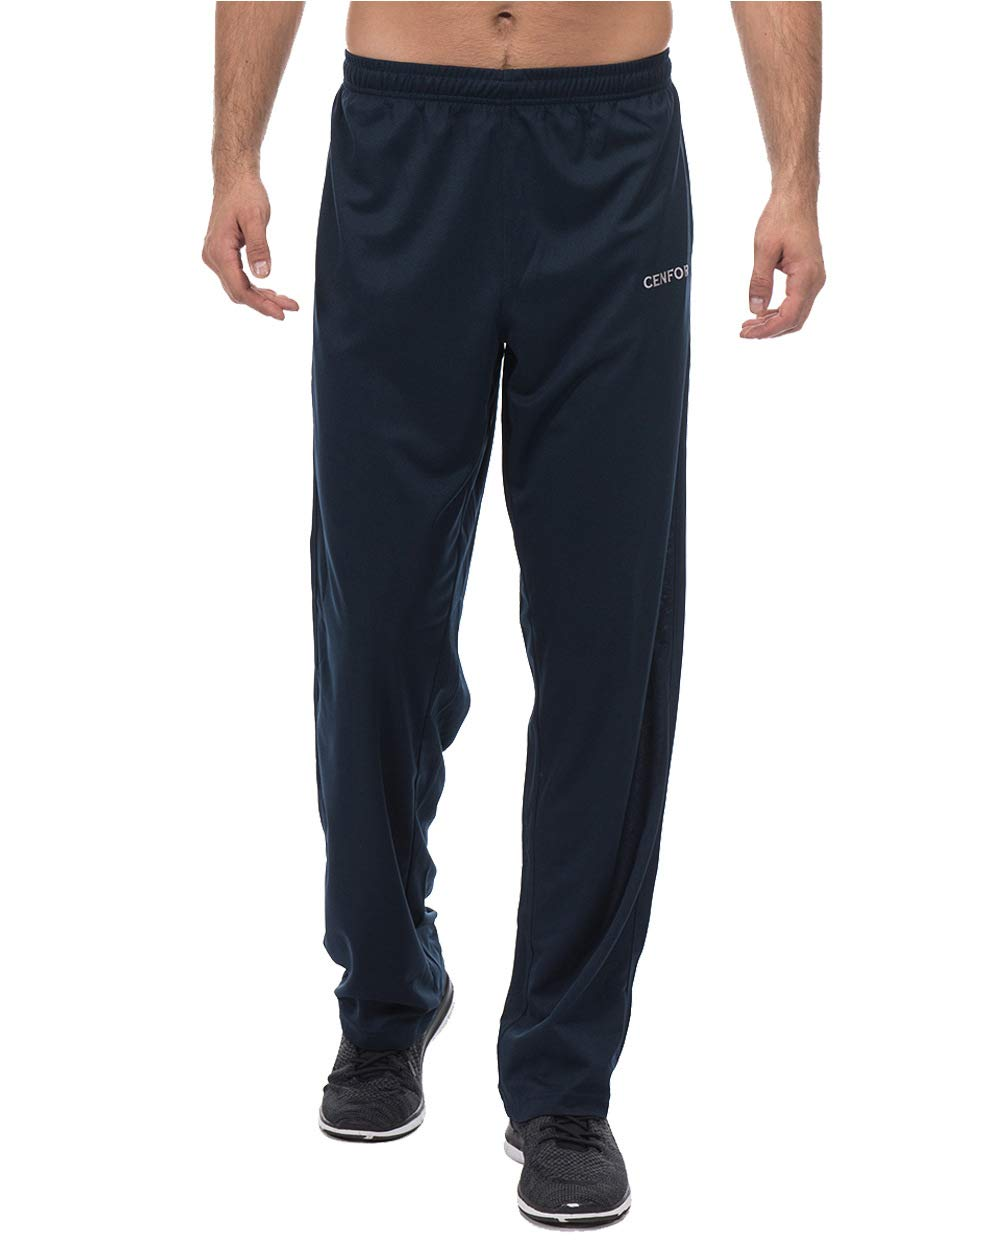 CENFOR Men's Sweatpants with Pockets Open Bottom Workout Pants, for Athletic, Jogging, Training, Casual